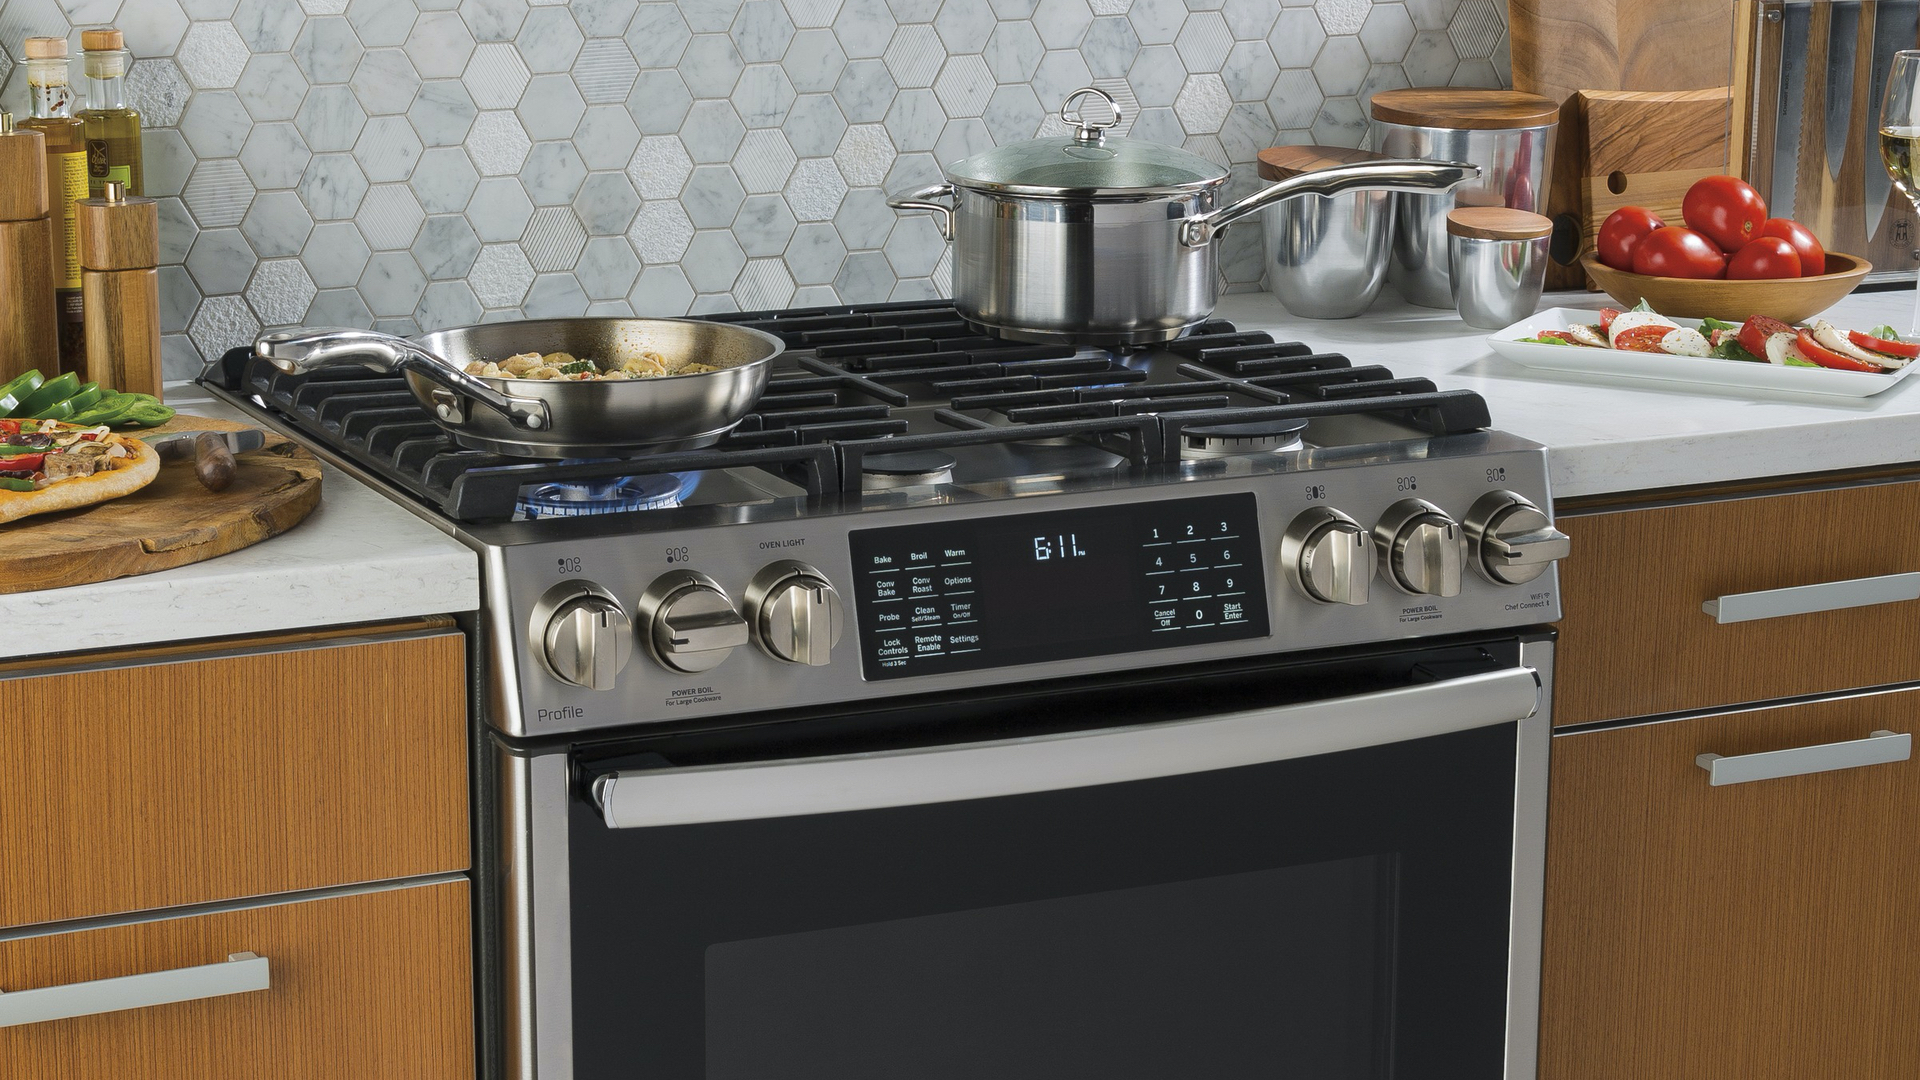 Best Ranges And Stoves 2020 An Inventory Of The Usa S Wall Ovens Slide